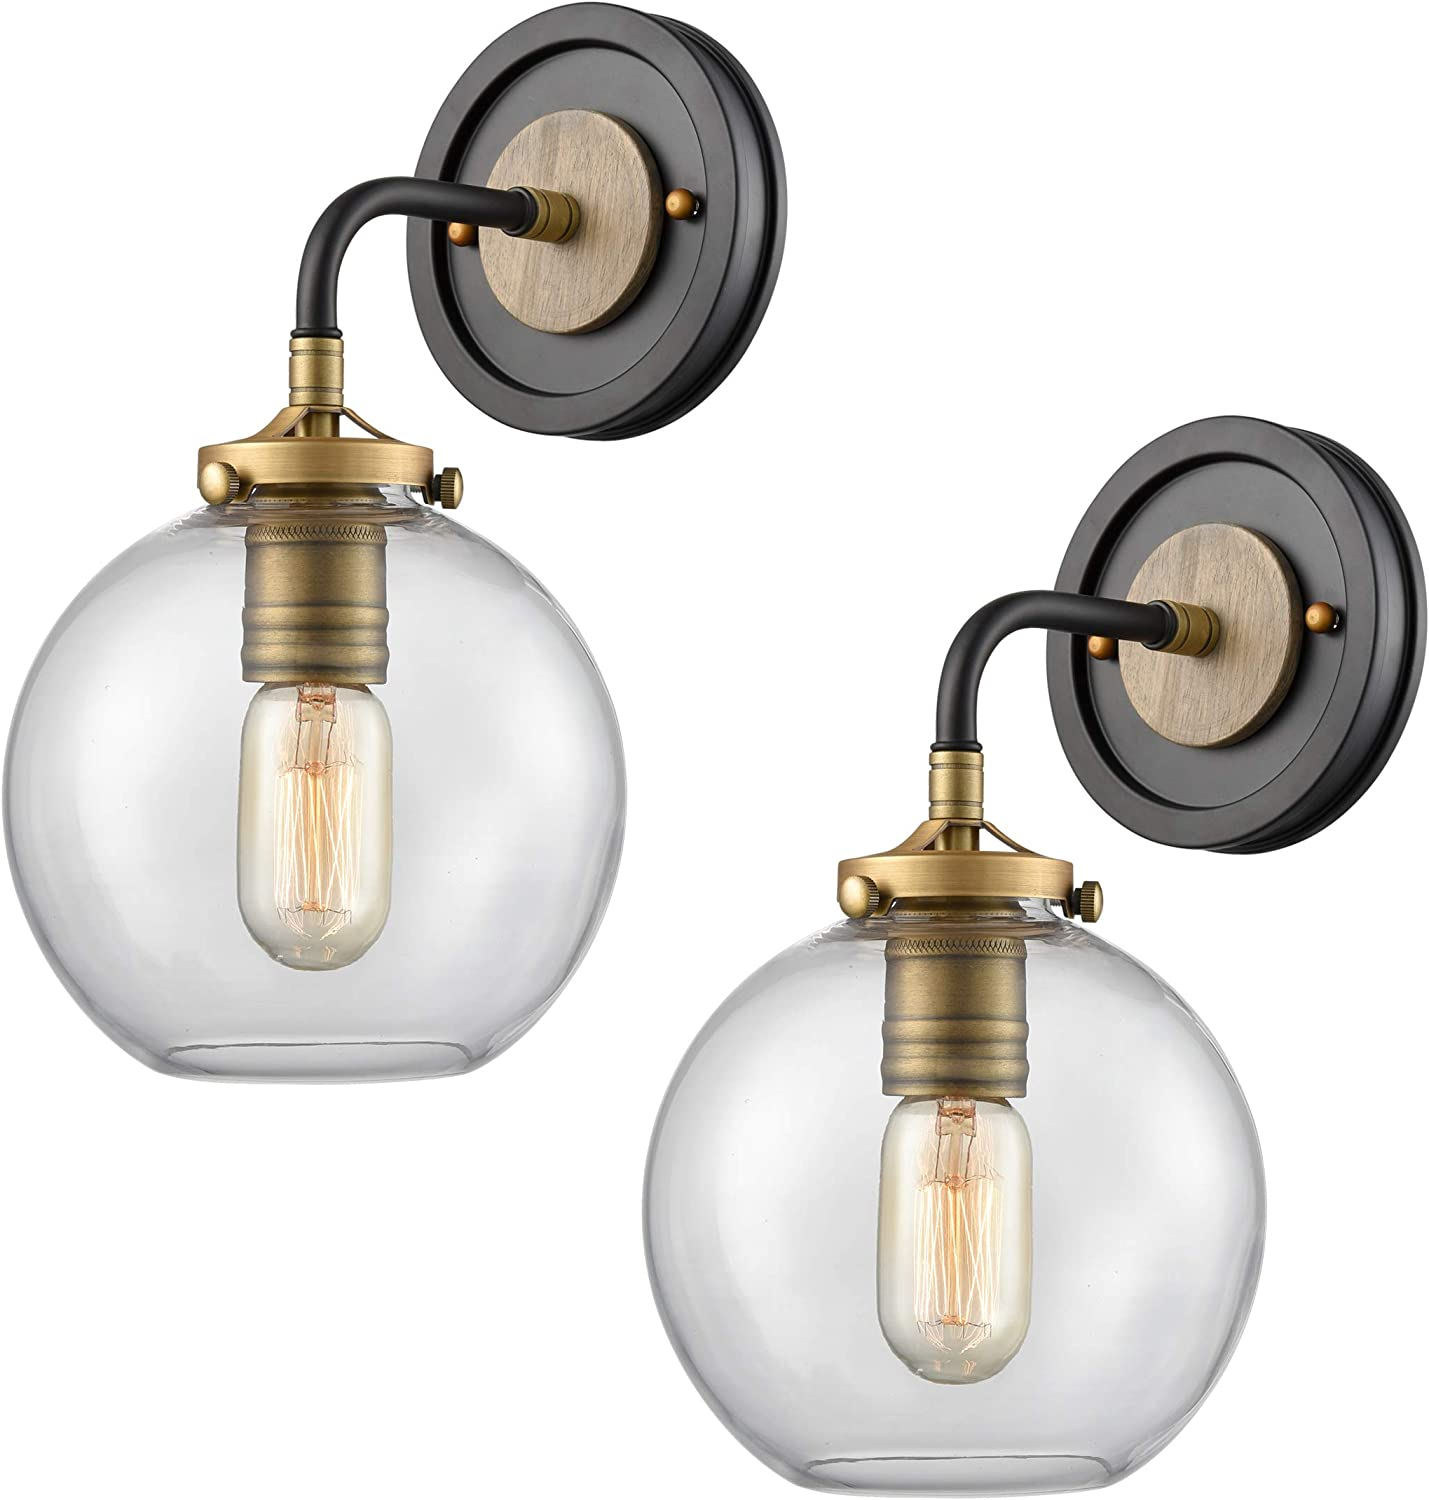 WILDSOUL 40041AB-2 Modern Farmhouse 1-Light Globe Sconce, Armed Brass Bathroom Sconces Clear Glass Vanity Wall Lighting Fixtures, Oak Wood and Brass Parts, Matte Black and Brass Finish, Pack of 2